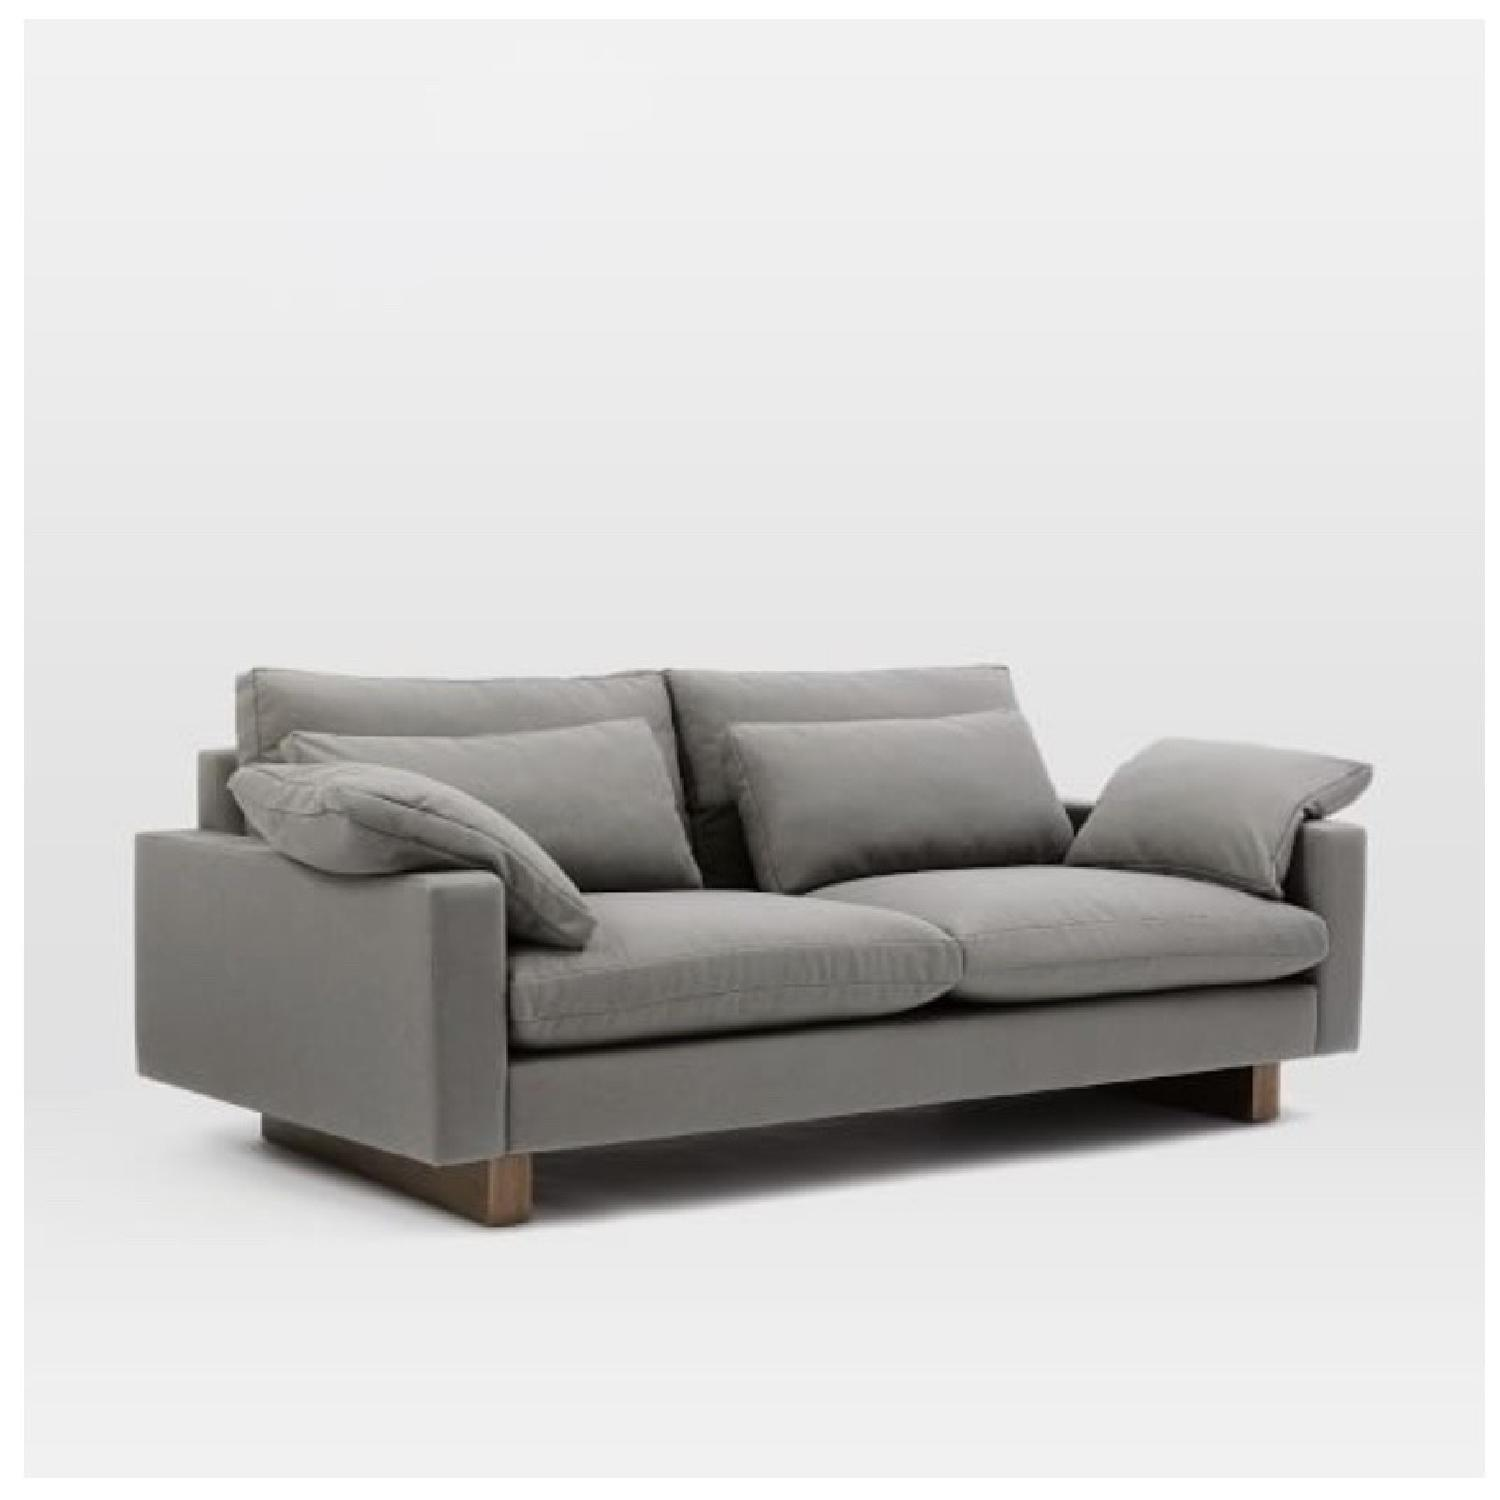 West Elm Harmony Down Filled Sofa